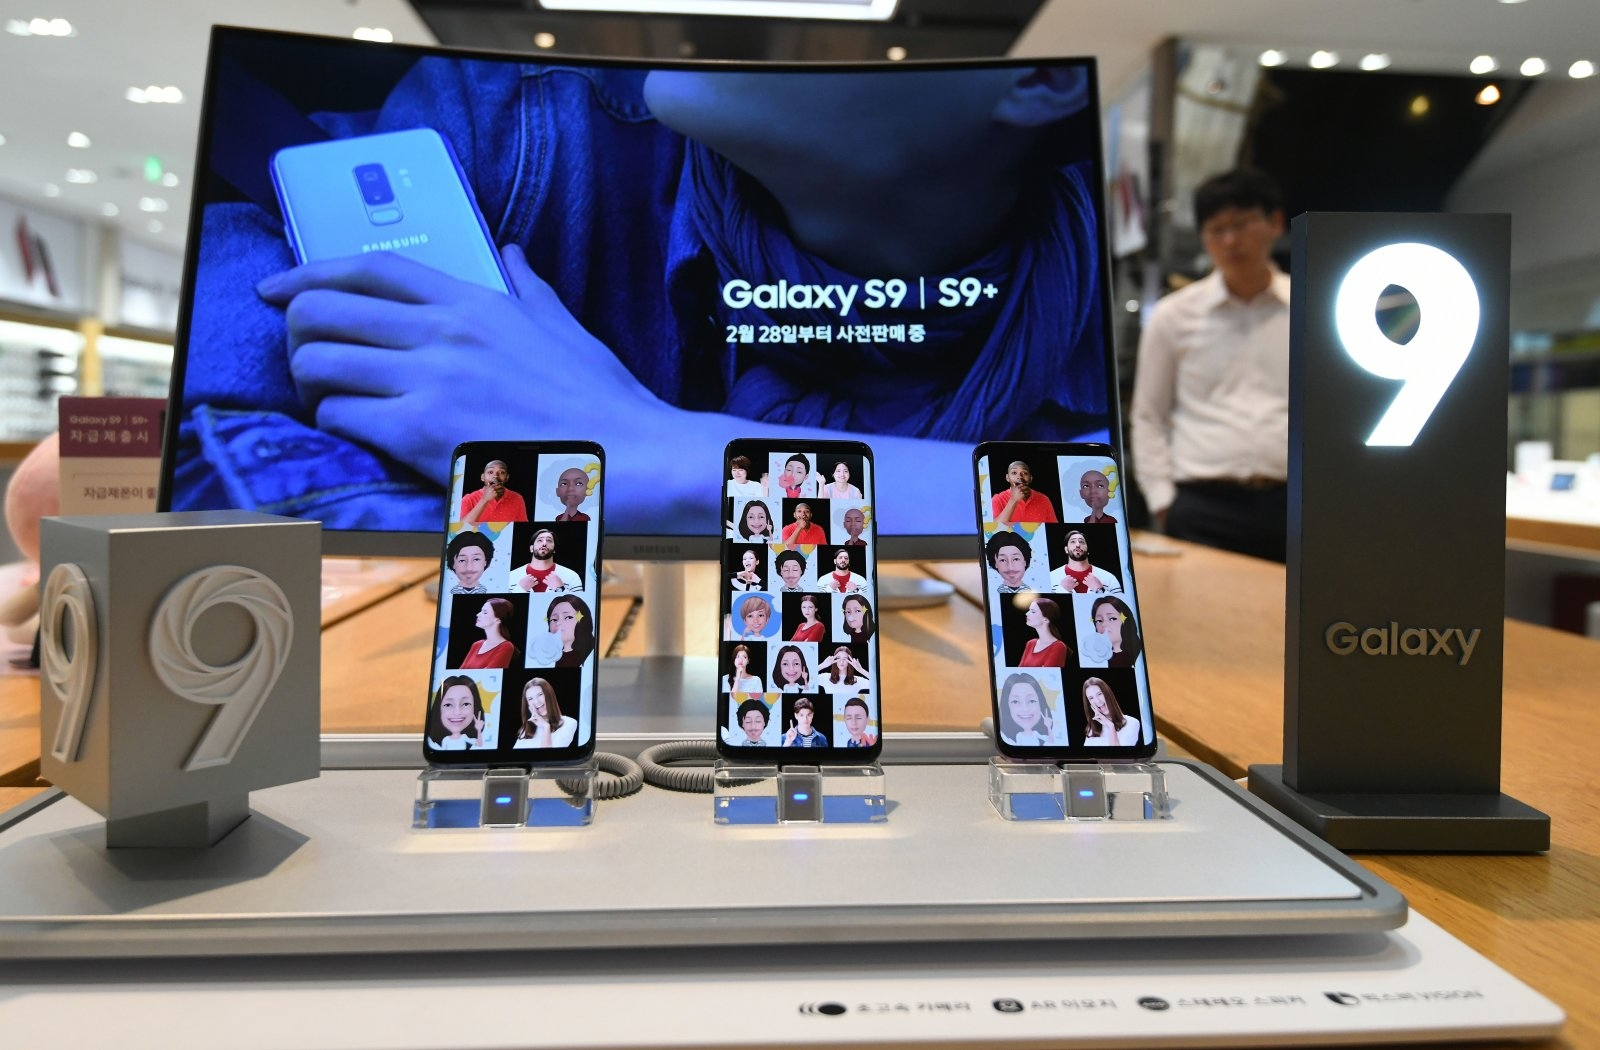 A man walks past a display for Samsung Galaxy S9 smartphones at the company's showroom in Seoul on July 31, 2018. - Samsung Electronics on July 31 reported a 0.1 percent dip in its second quarter net profit from a year earlier, blaming slower global sales of premium smartphones that dented demand for its flagship Galaxy device. (Photo by Jung Yeon-je / AFP)        (Photo credit should read JUNG YEON-JE/AFP/Getty Images)